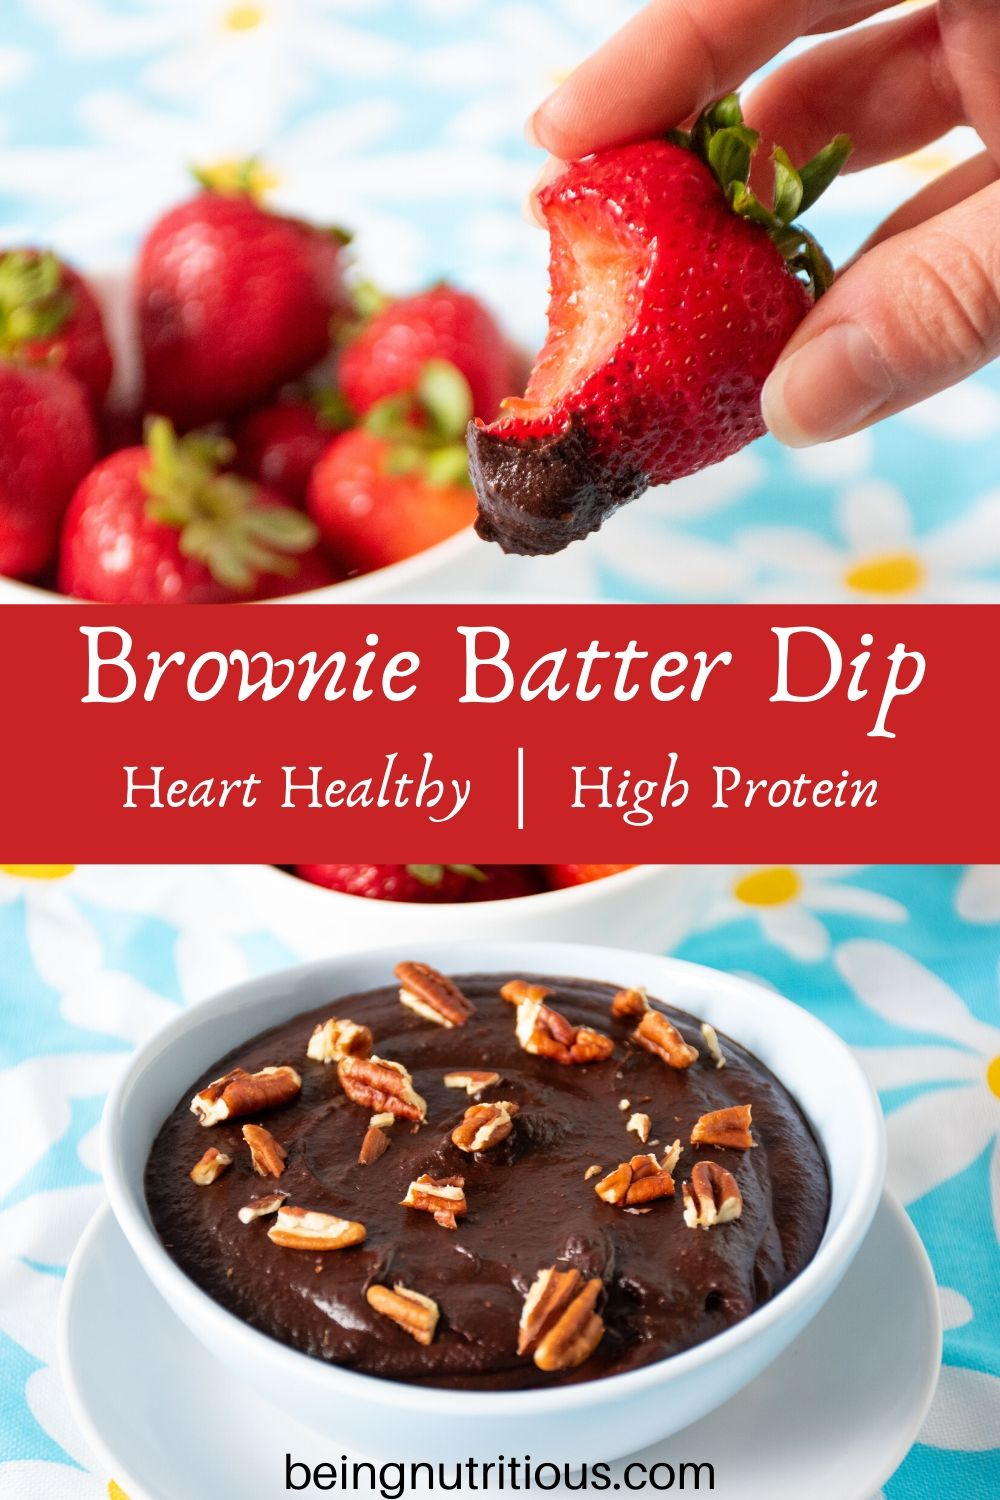 Brownie batter dip in a bowl with a bowl of strawberries behind. A hand holding a strawberry with dip on it and a bite taken out in the foreground.